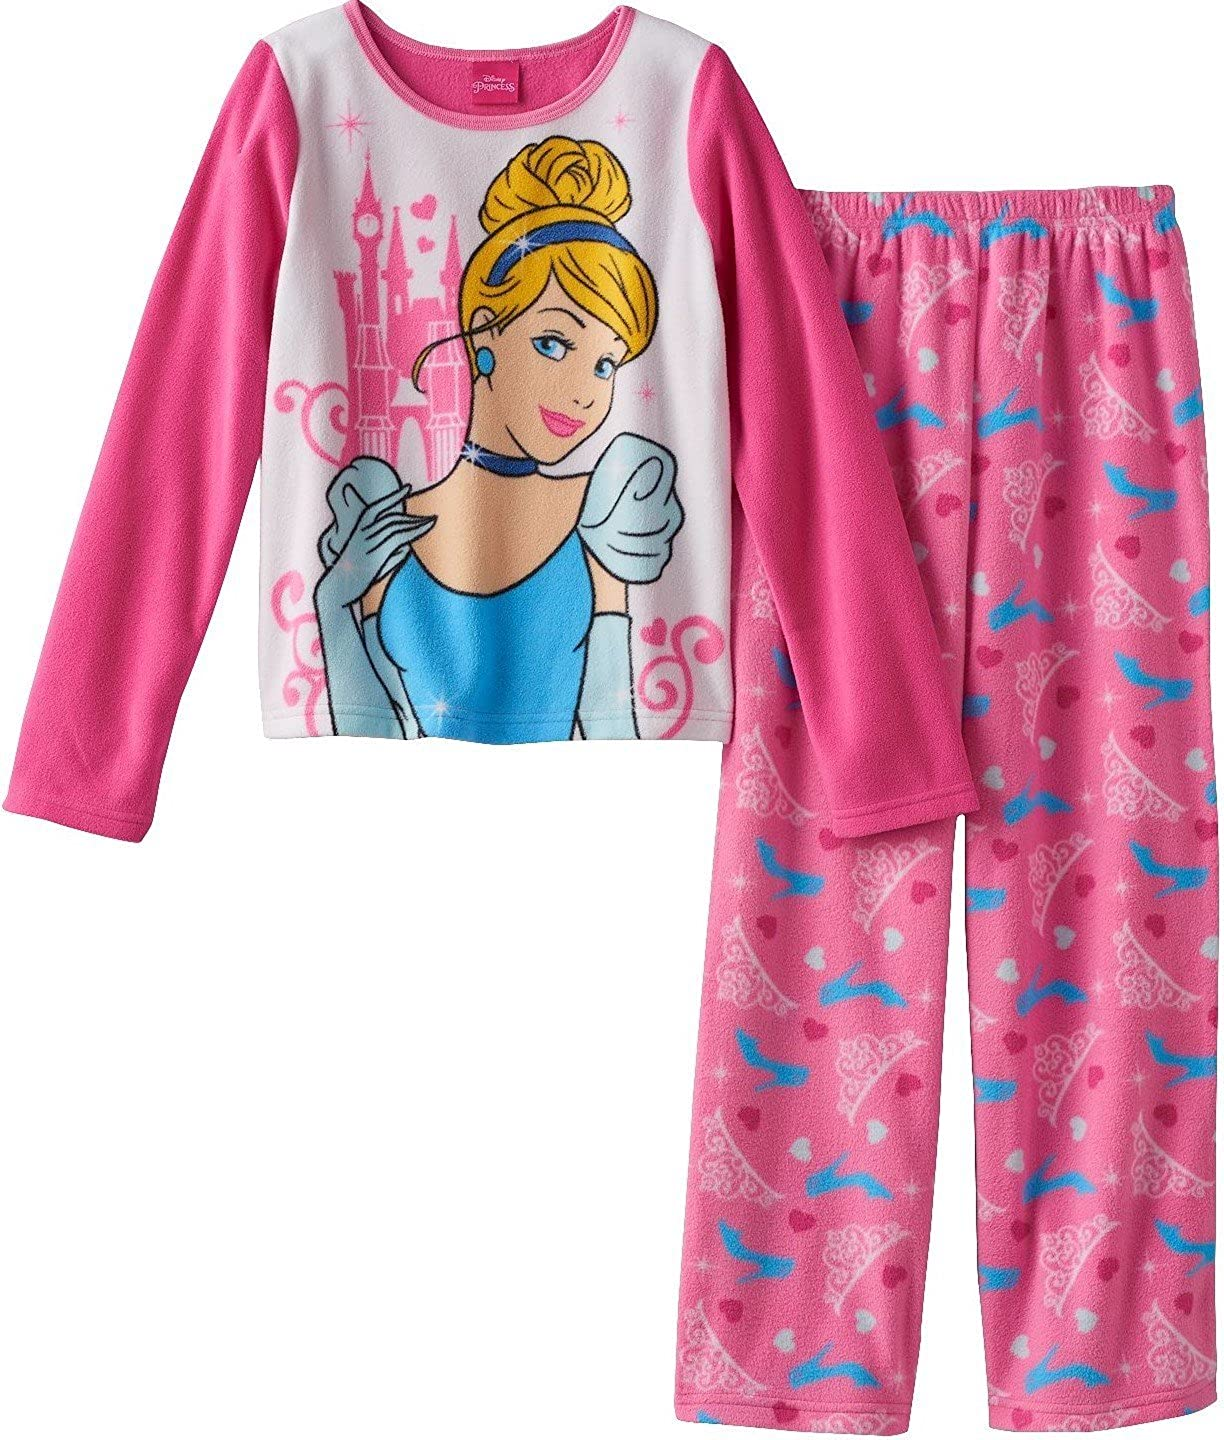 Size Medium Blue Disney Women/'s Cinderella Pajama Sweatshirt